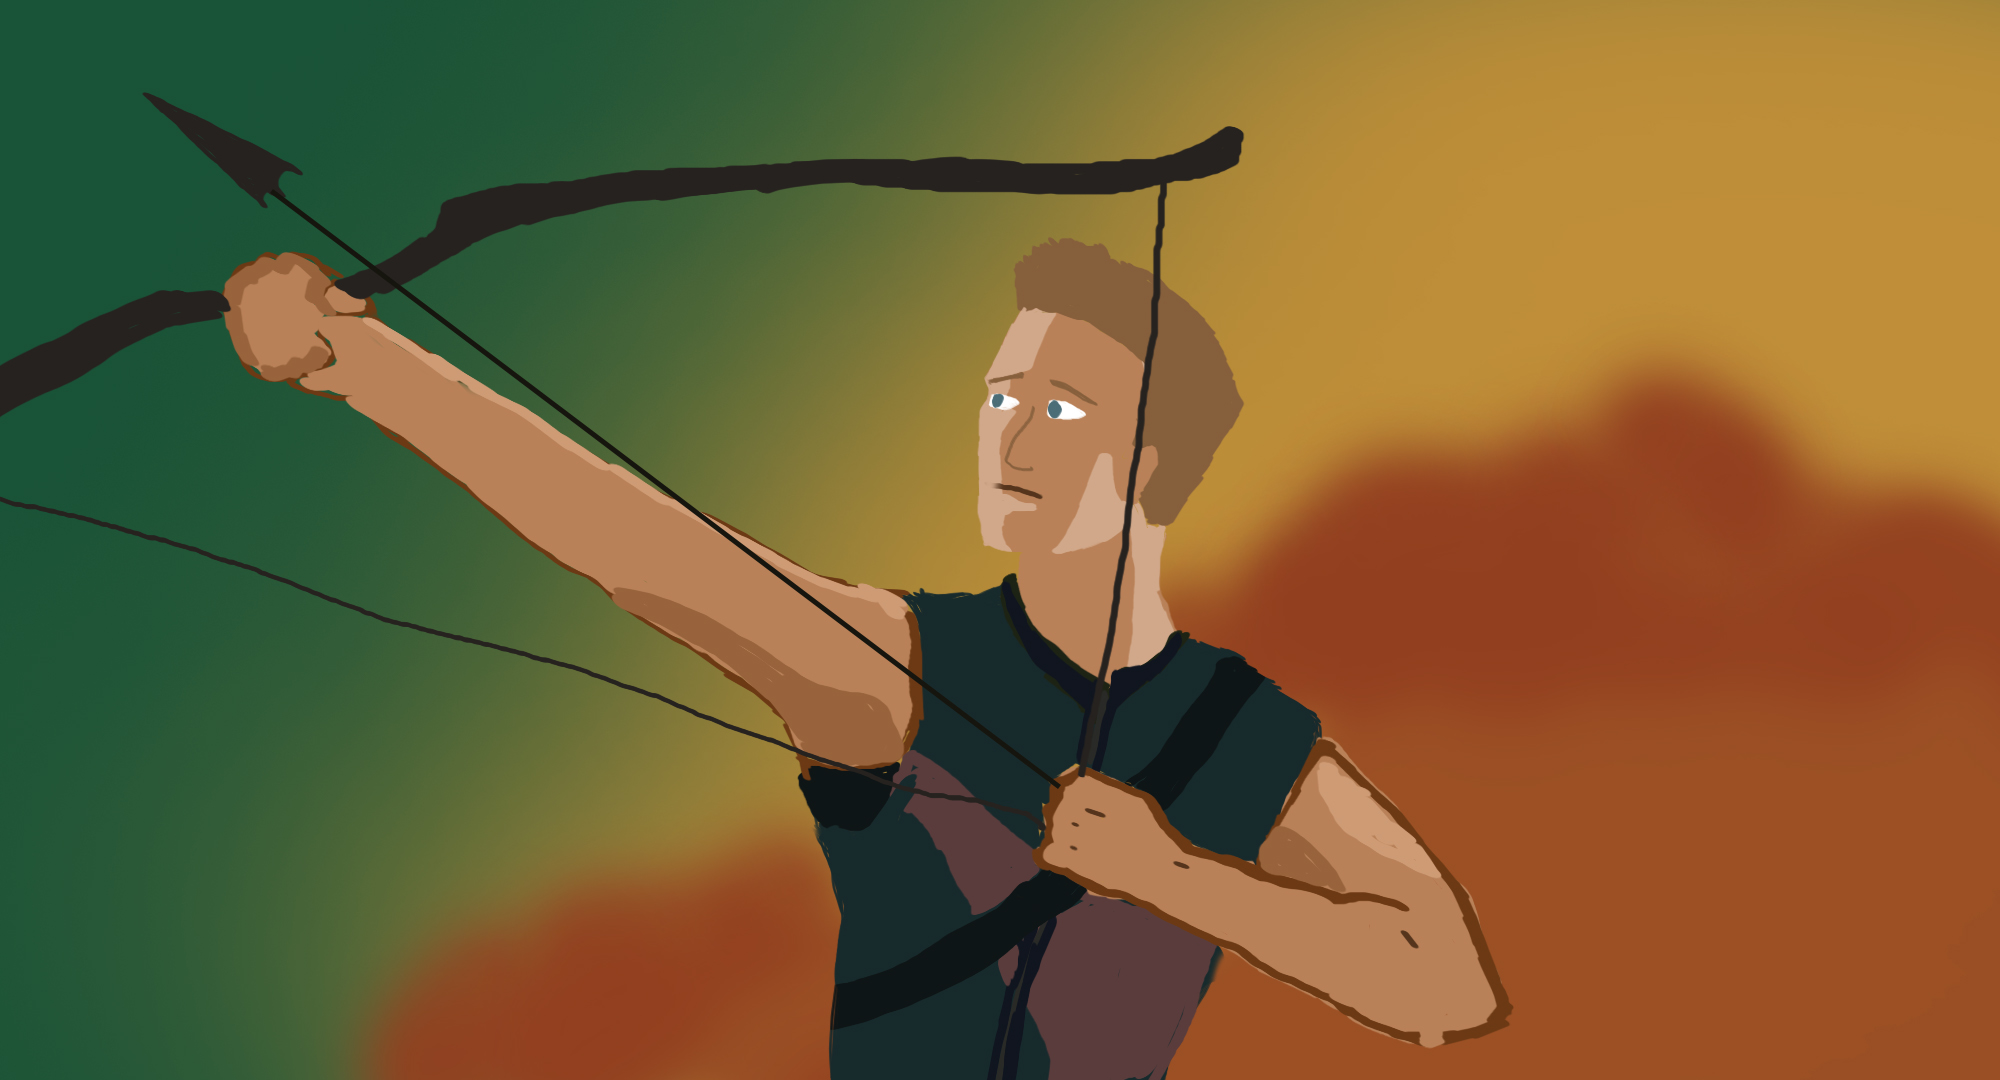 Hawkeye Fan art